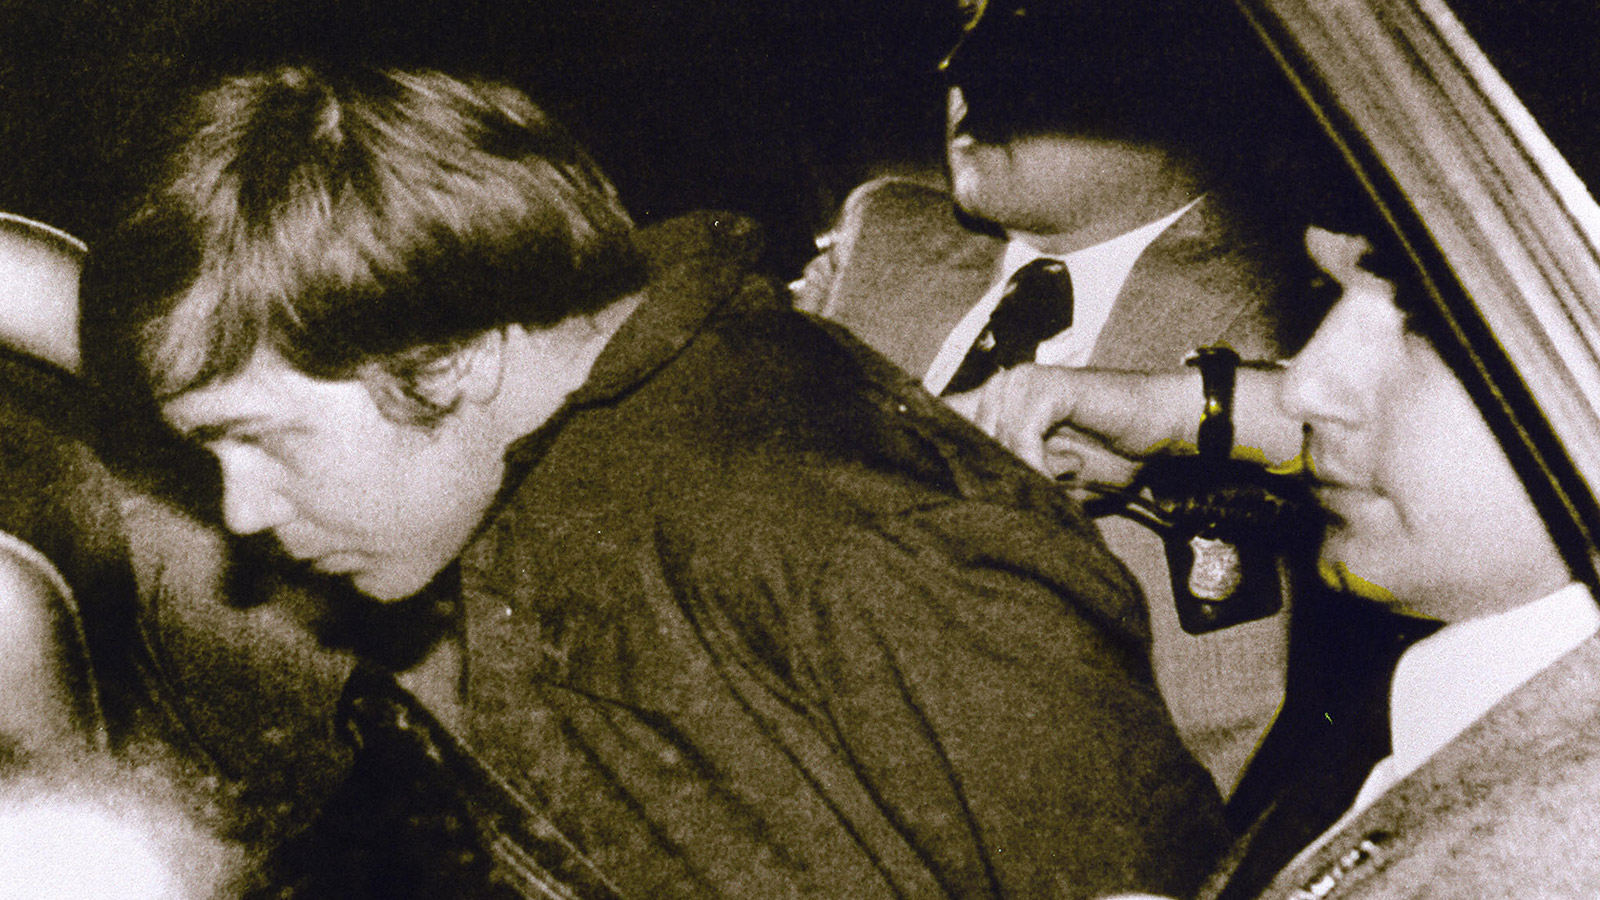 This 30 March 1981 file photo shows John Hinckley Jr. (L) escorted by police in Washington, DC, following his arrest after shooting and seriously wounding then US president Ronald Reagan. A federal judge ruled 17 December 2003 Hinckley can make local visits with his family from St. Elizabeth's Hospital in Washington, DC, where he has been held. AFP PHOTO/FILES (credit: AFP/Getty Images)